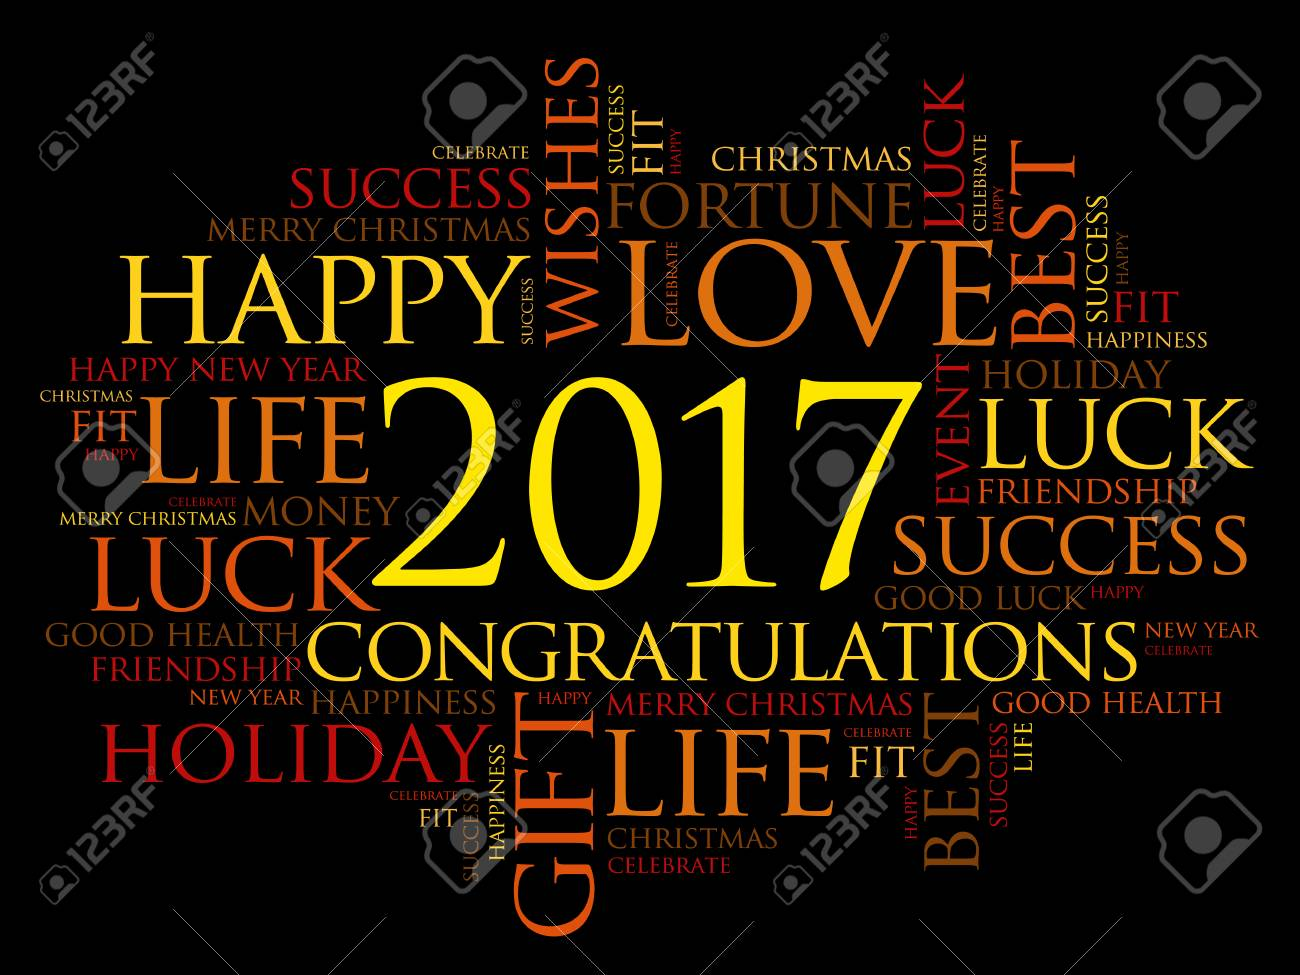 2017 year greeting word cloud collage happy new year celebration 2017 year greeting word cloud collage happy new year celebration greeting card stock vector m4hsunfo